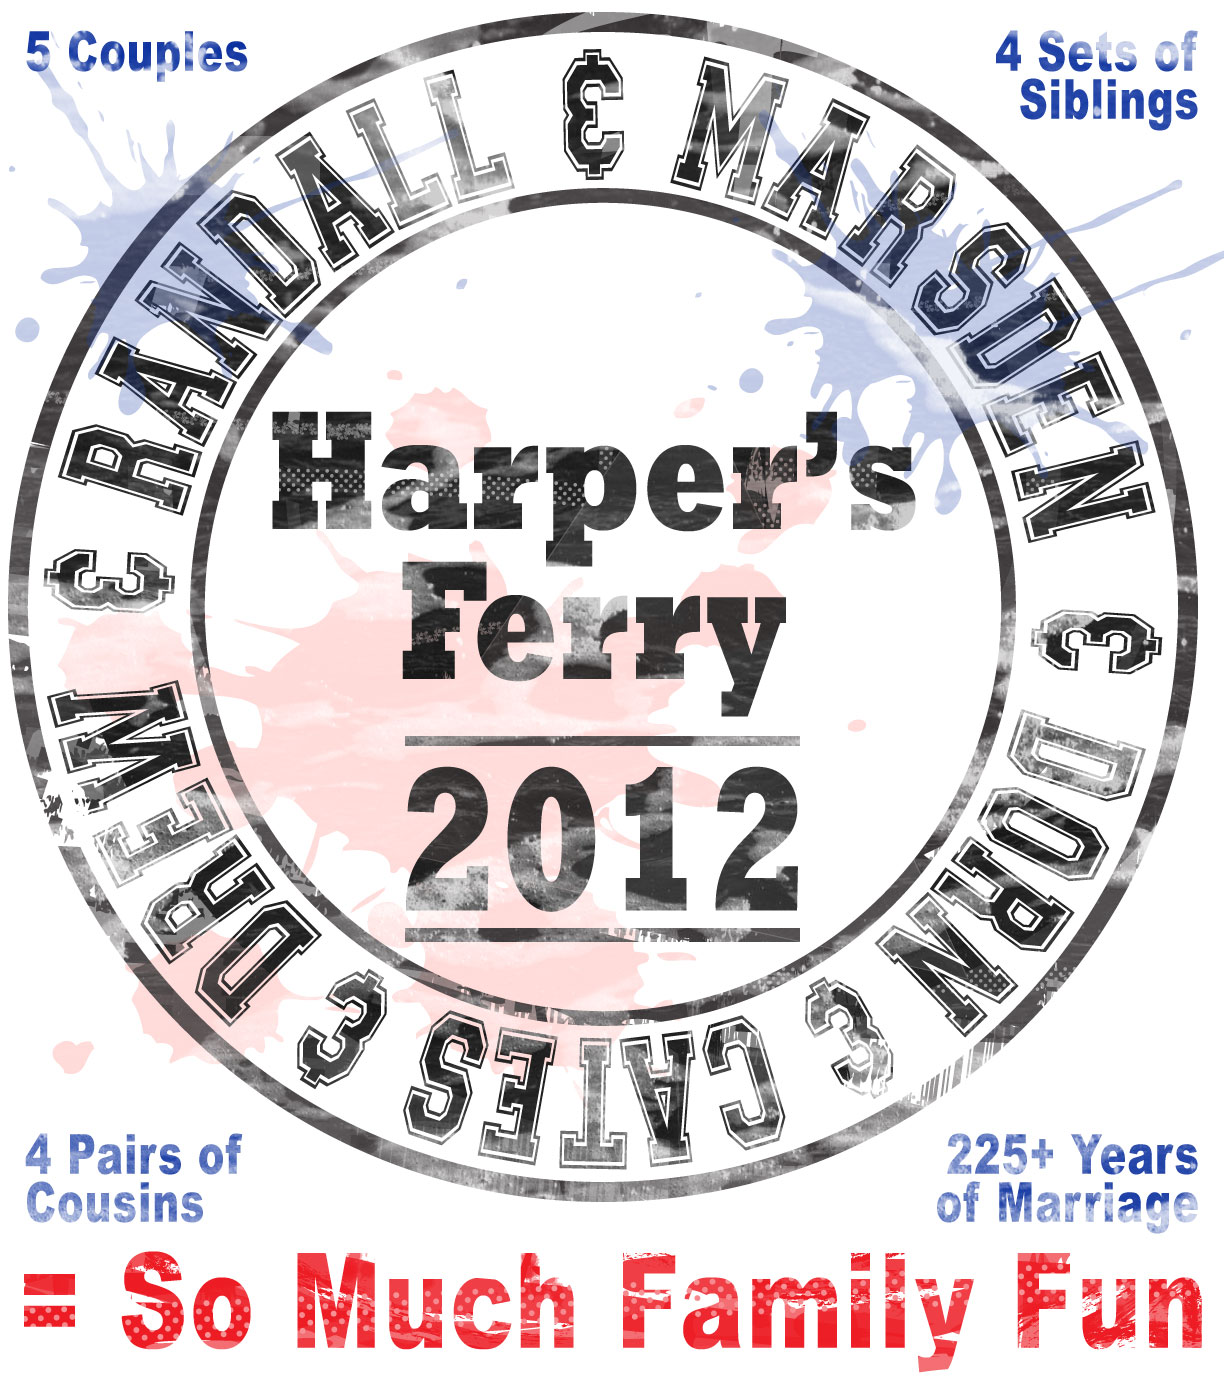 Family Reunion 2012 Logo Unveiled So Much Family Fun